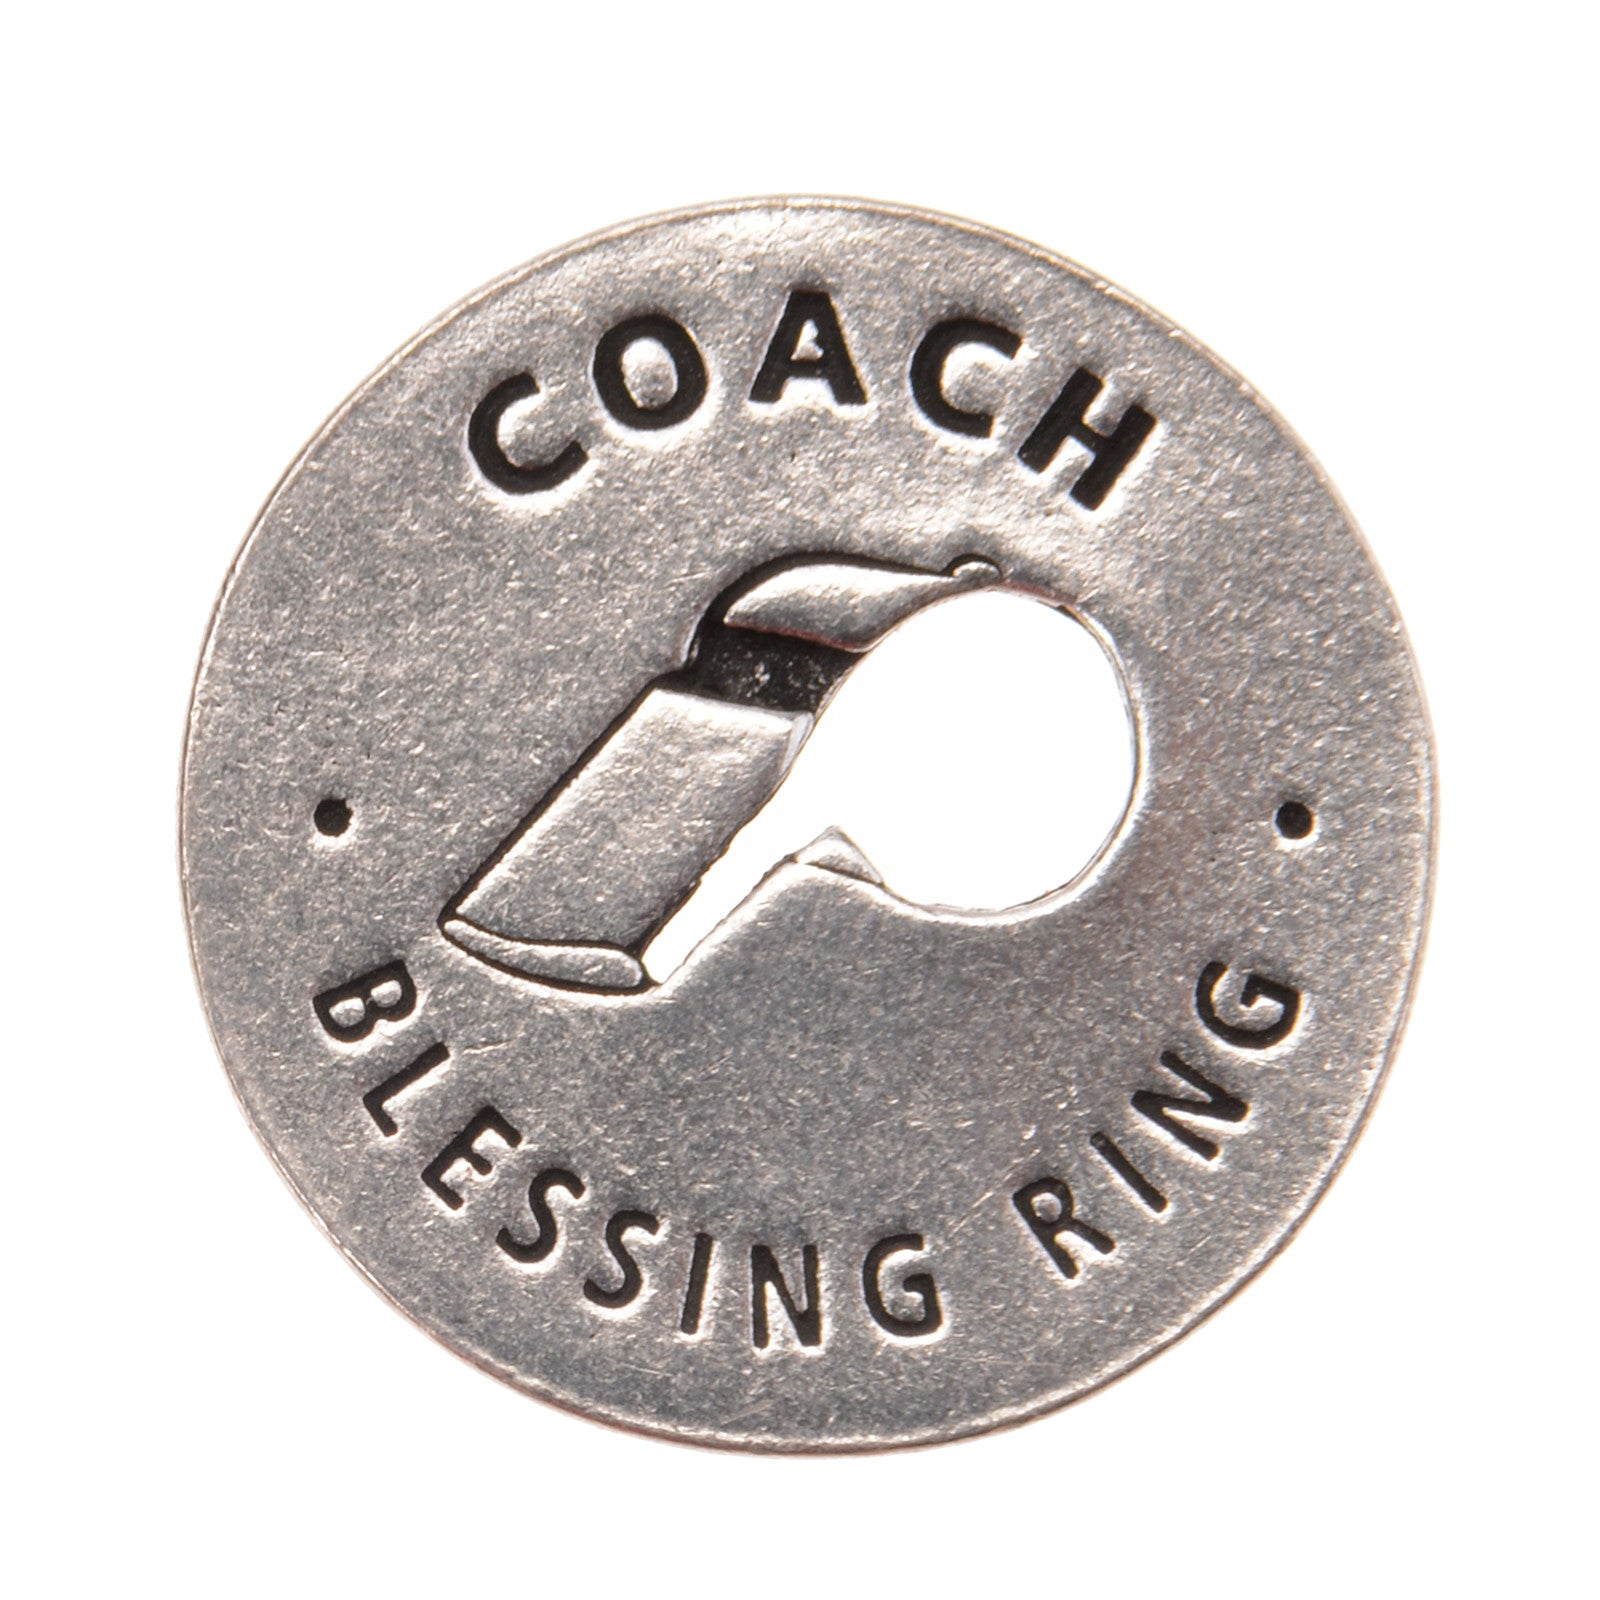 Coach Blessing Ring (on back - motivates, inspires, encourages) - Whitney Howard Designs